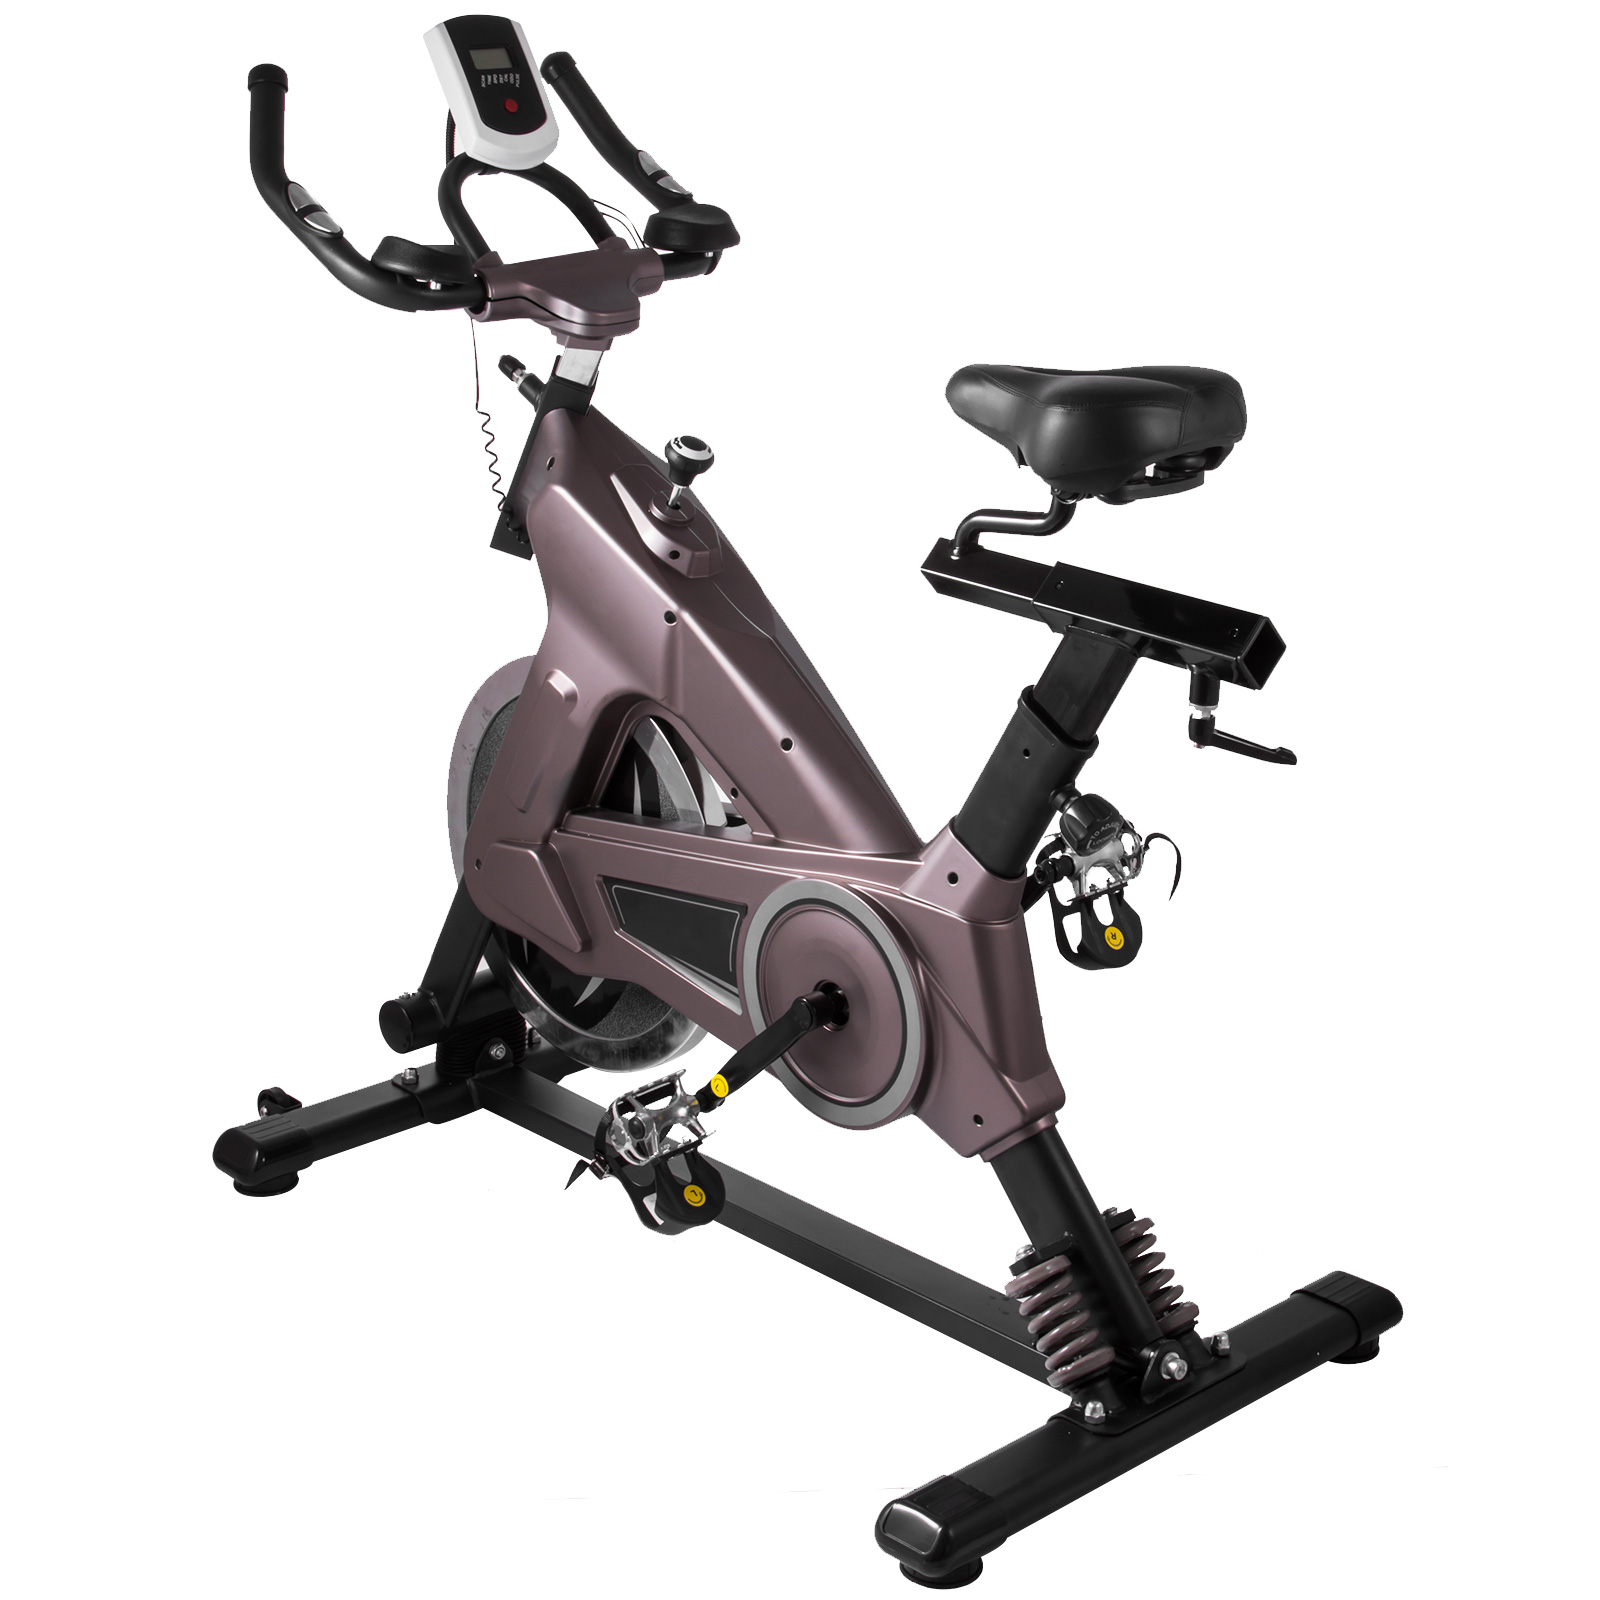 Multi-style-Magnetic-Exercise-Bike-office-Bicycle-under-Desk-Fitness-Cardio miniature 179